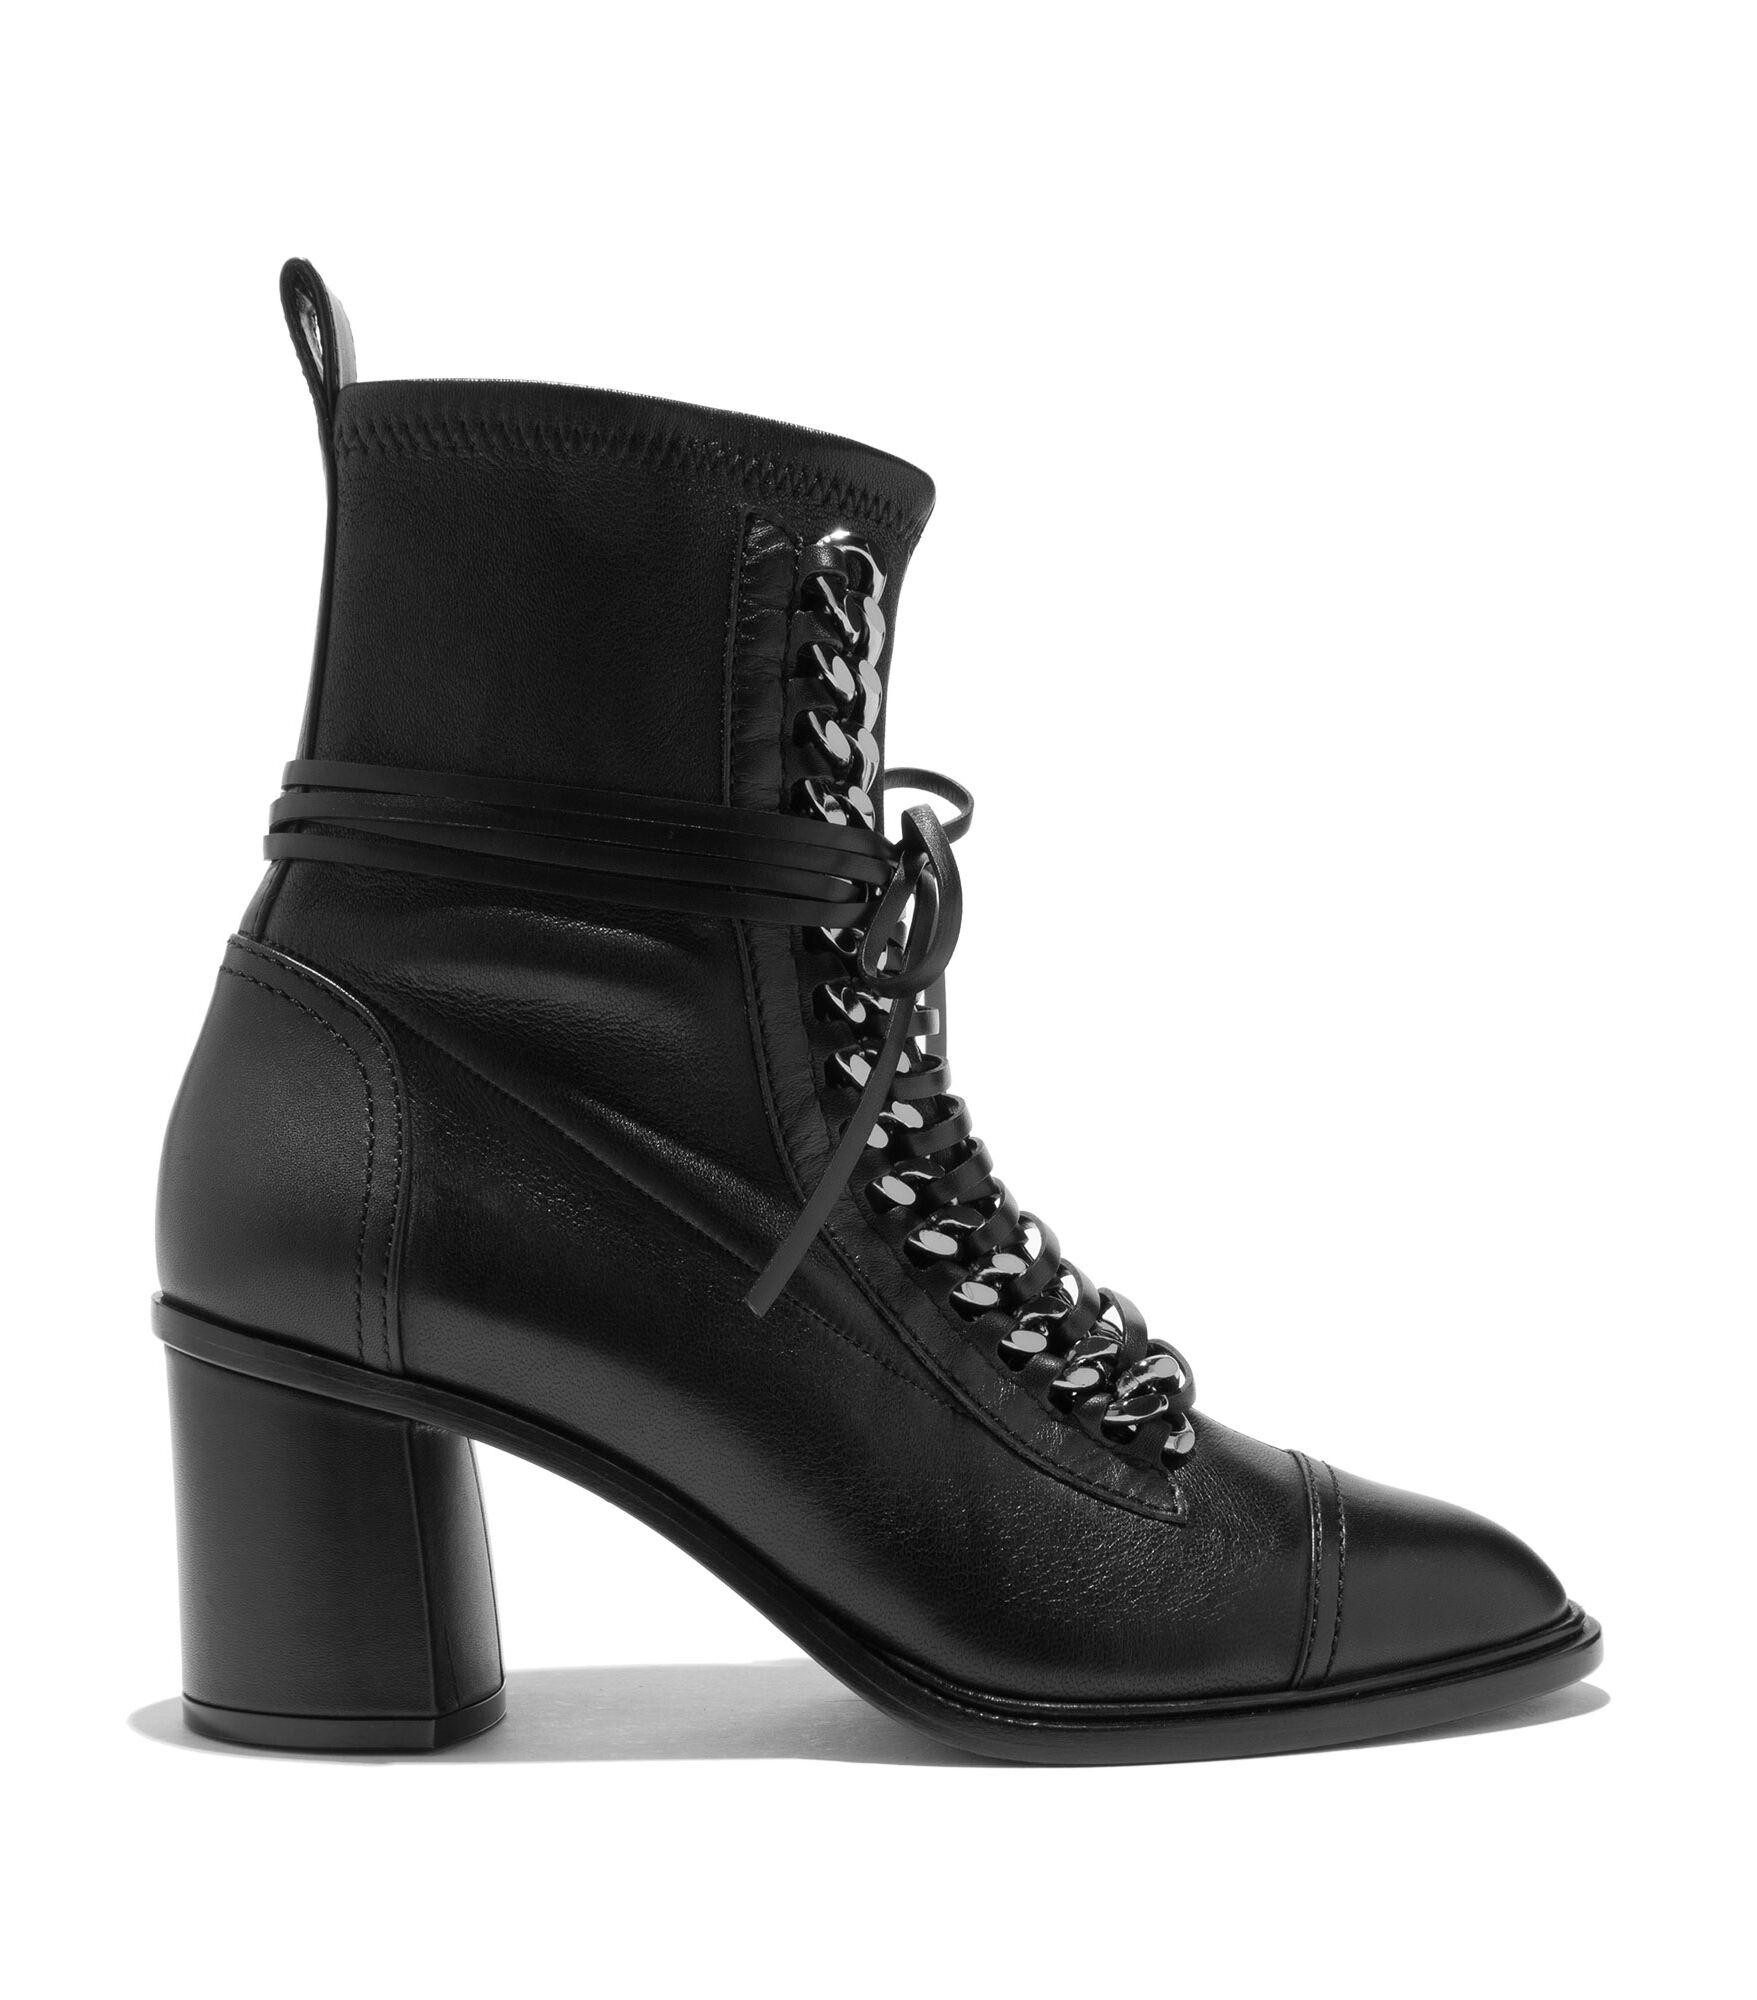 Casadei Ankle Boots - Perfecto Black Calf Leather